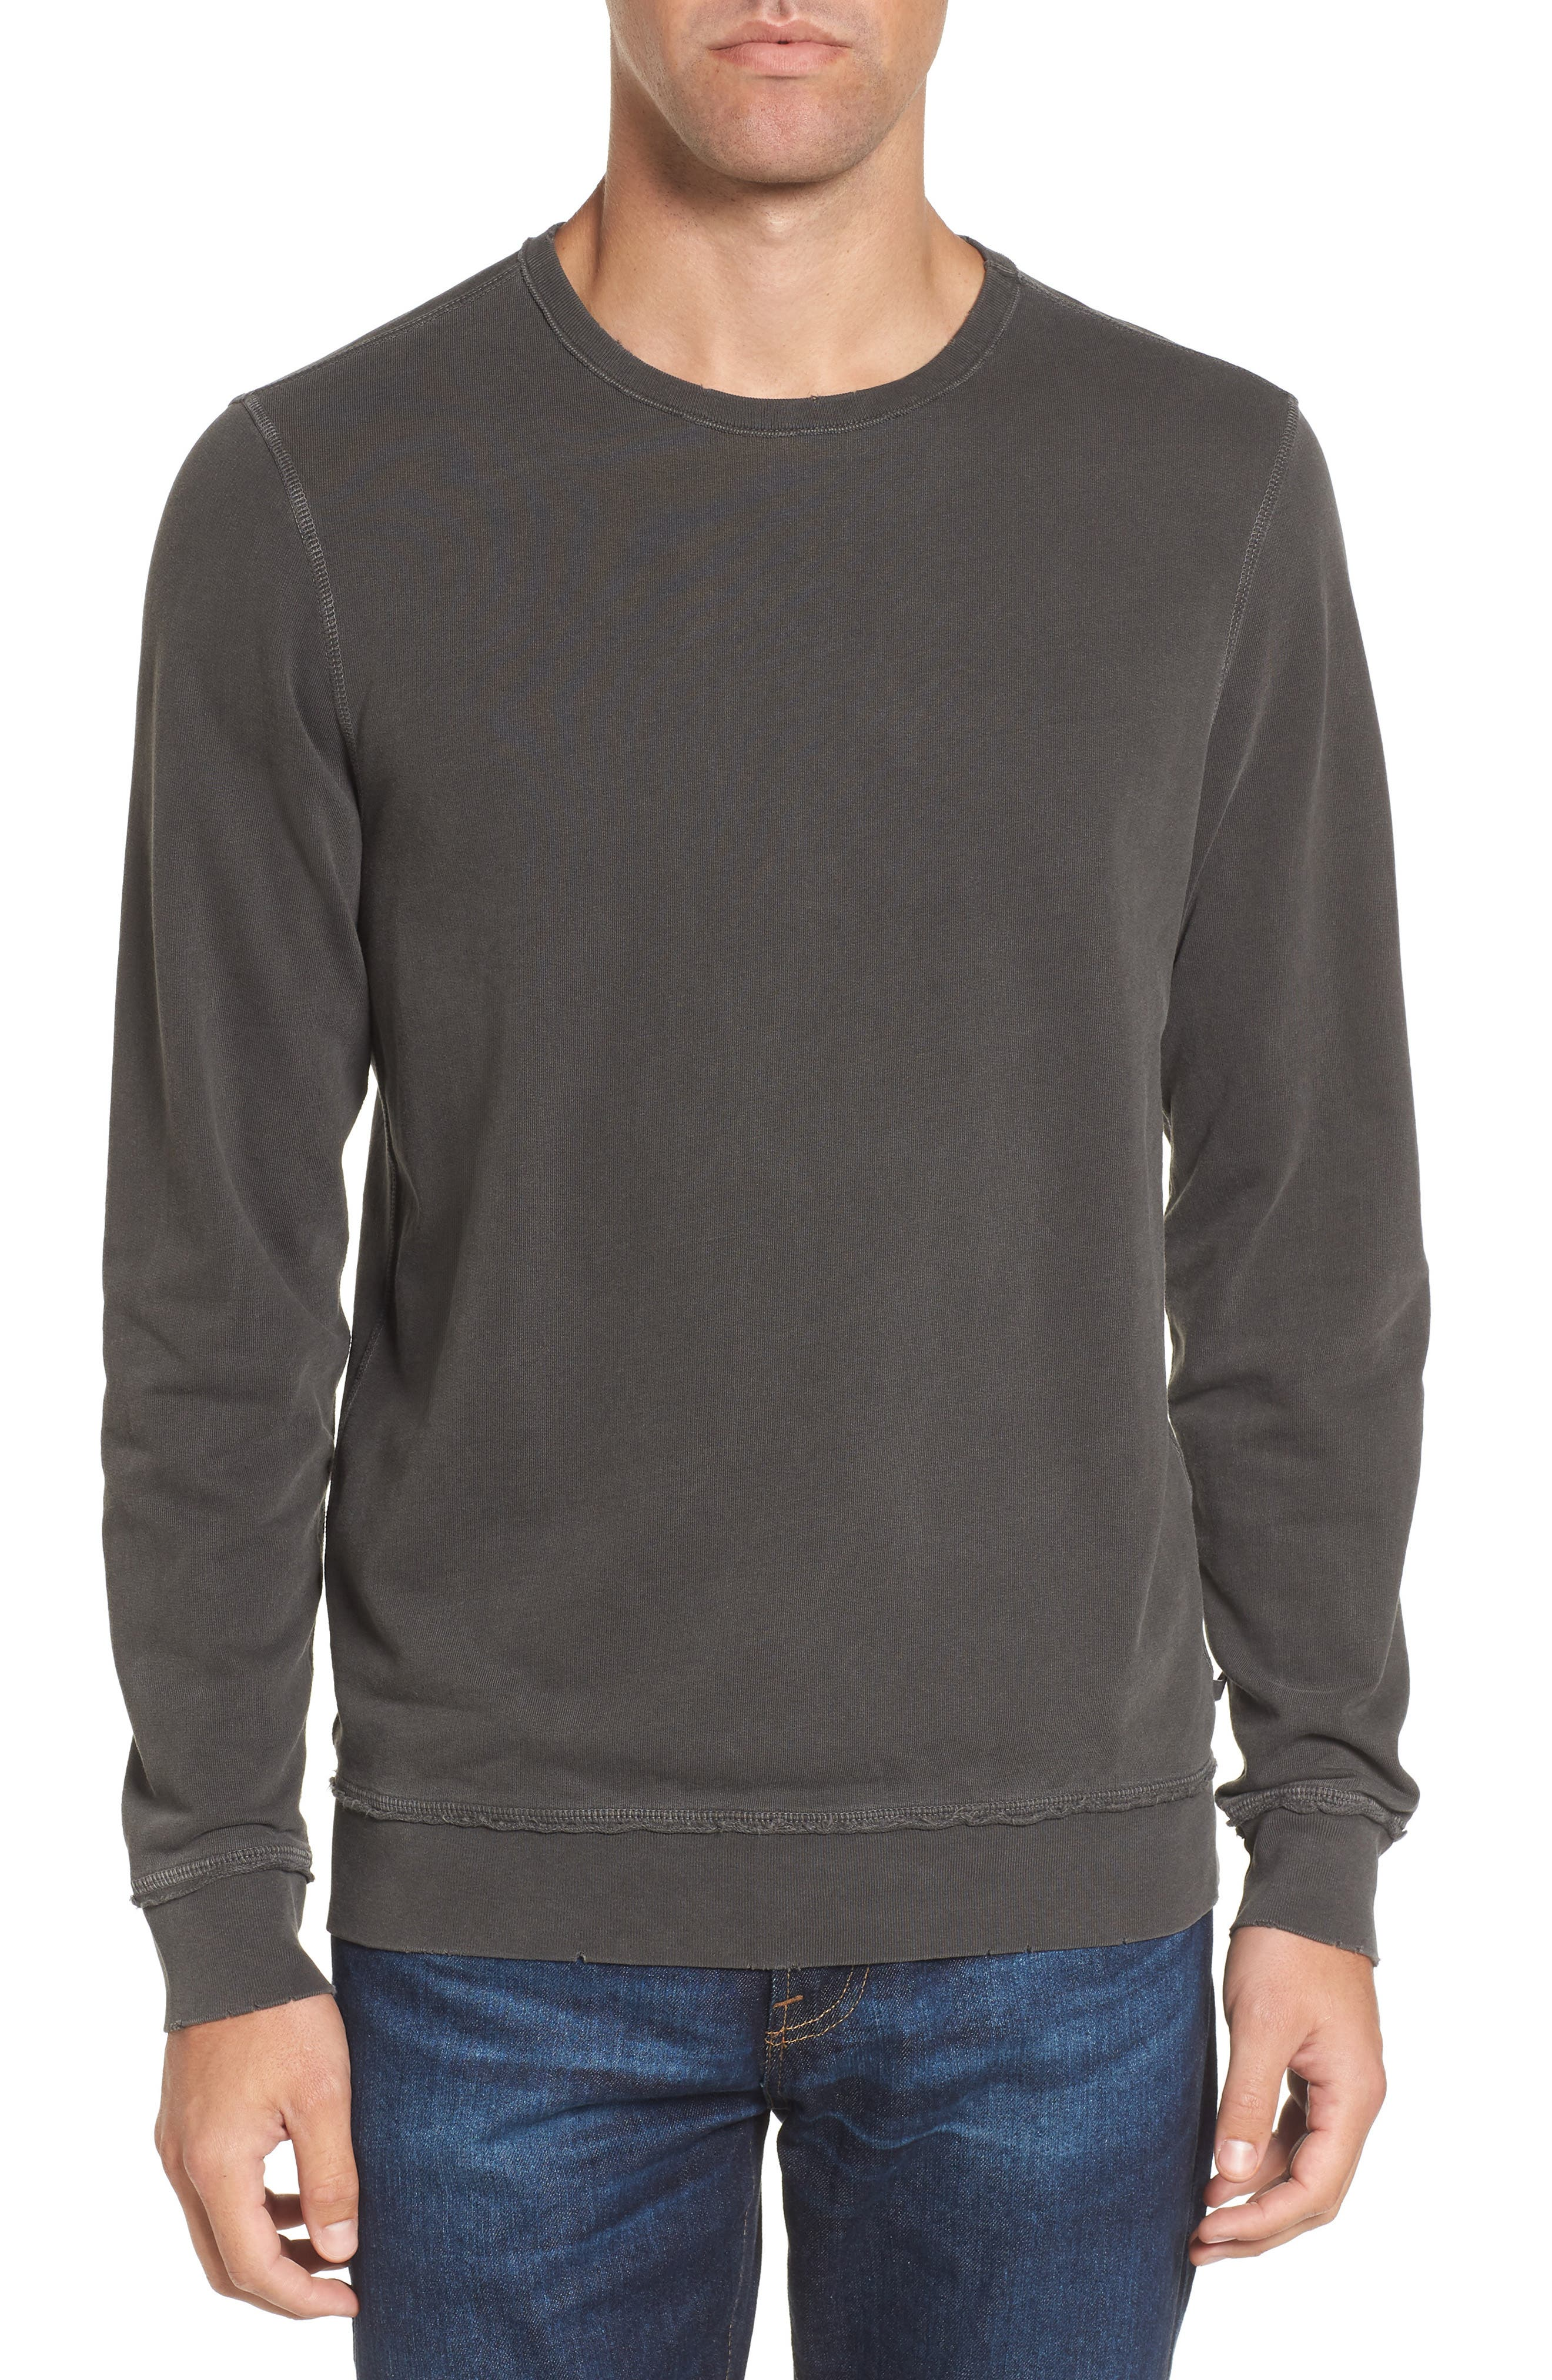 AG Brendan Raw Edge Crewneck Sweatshirt